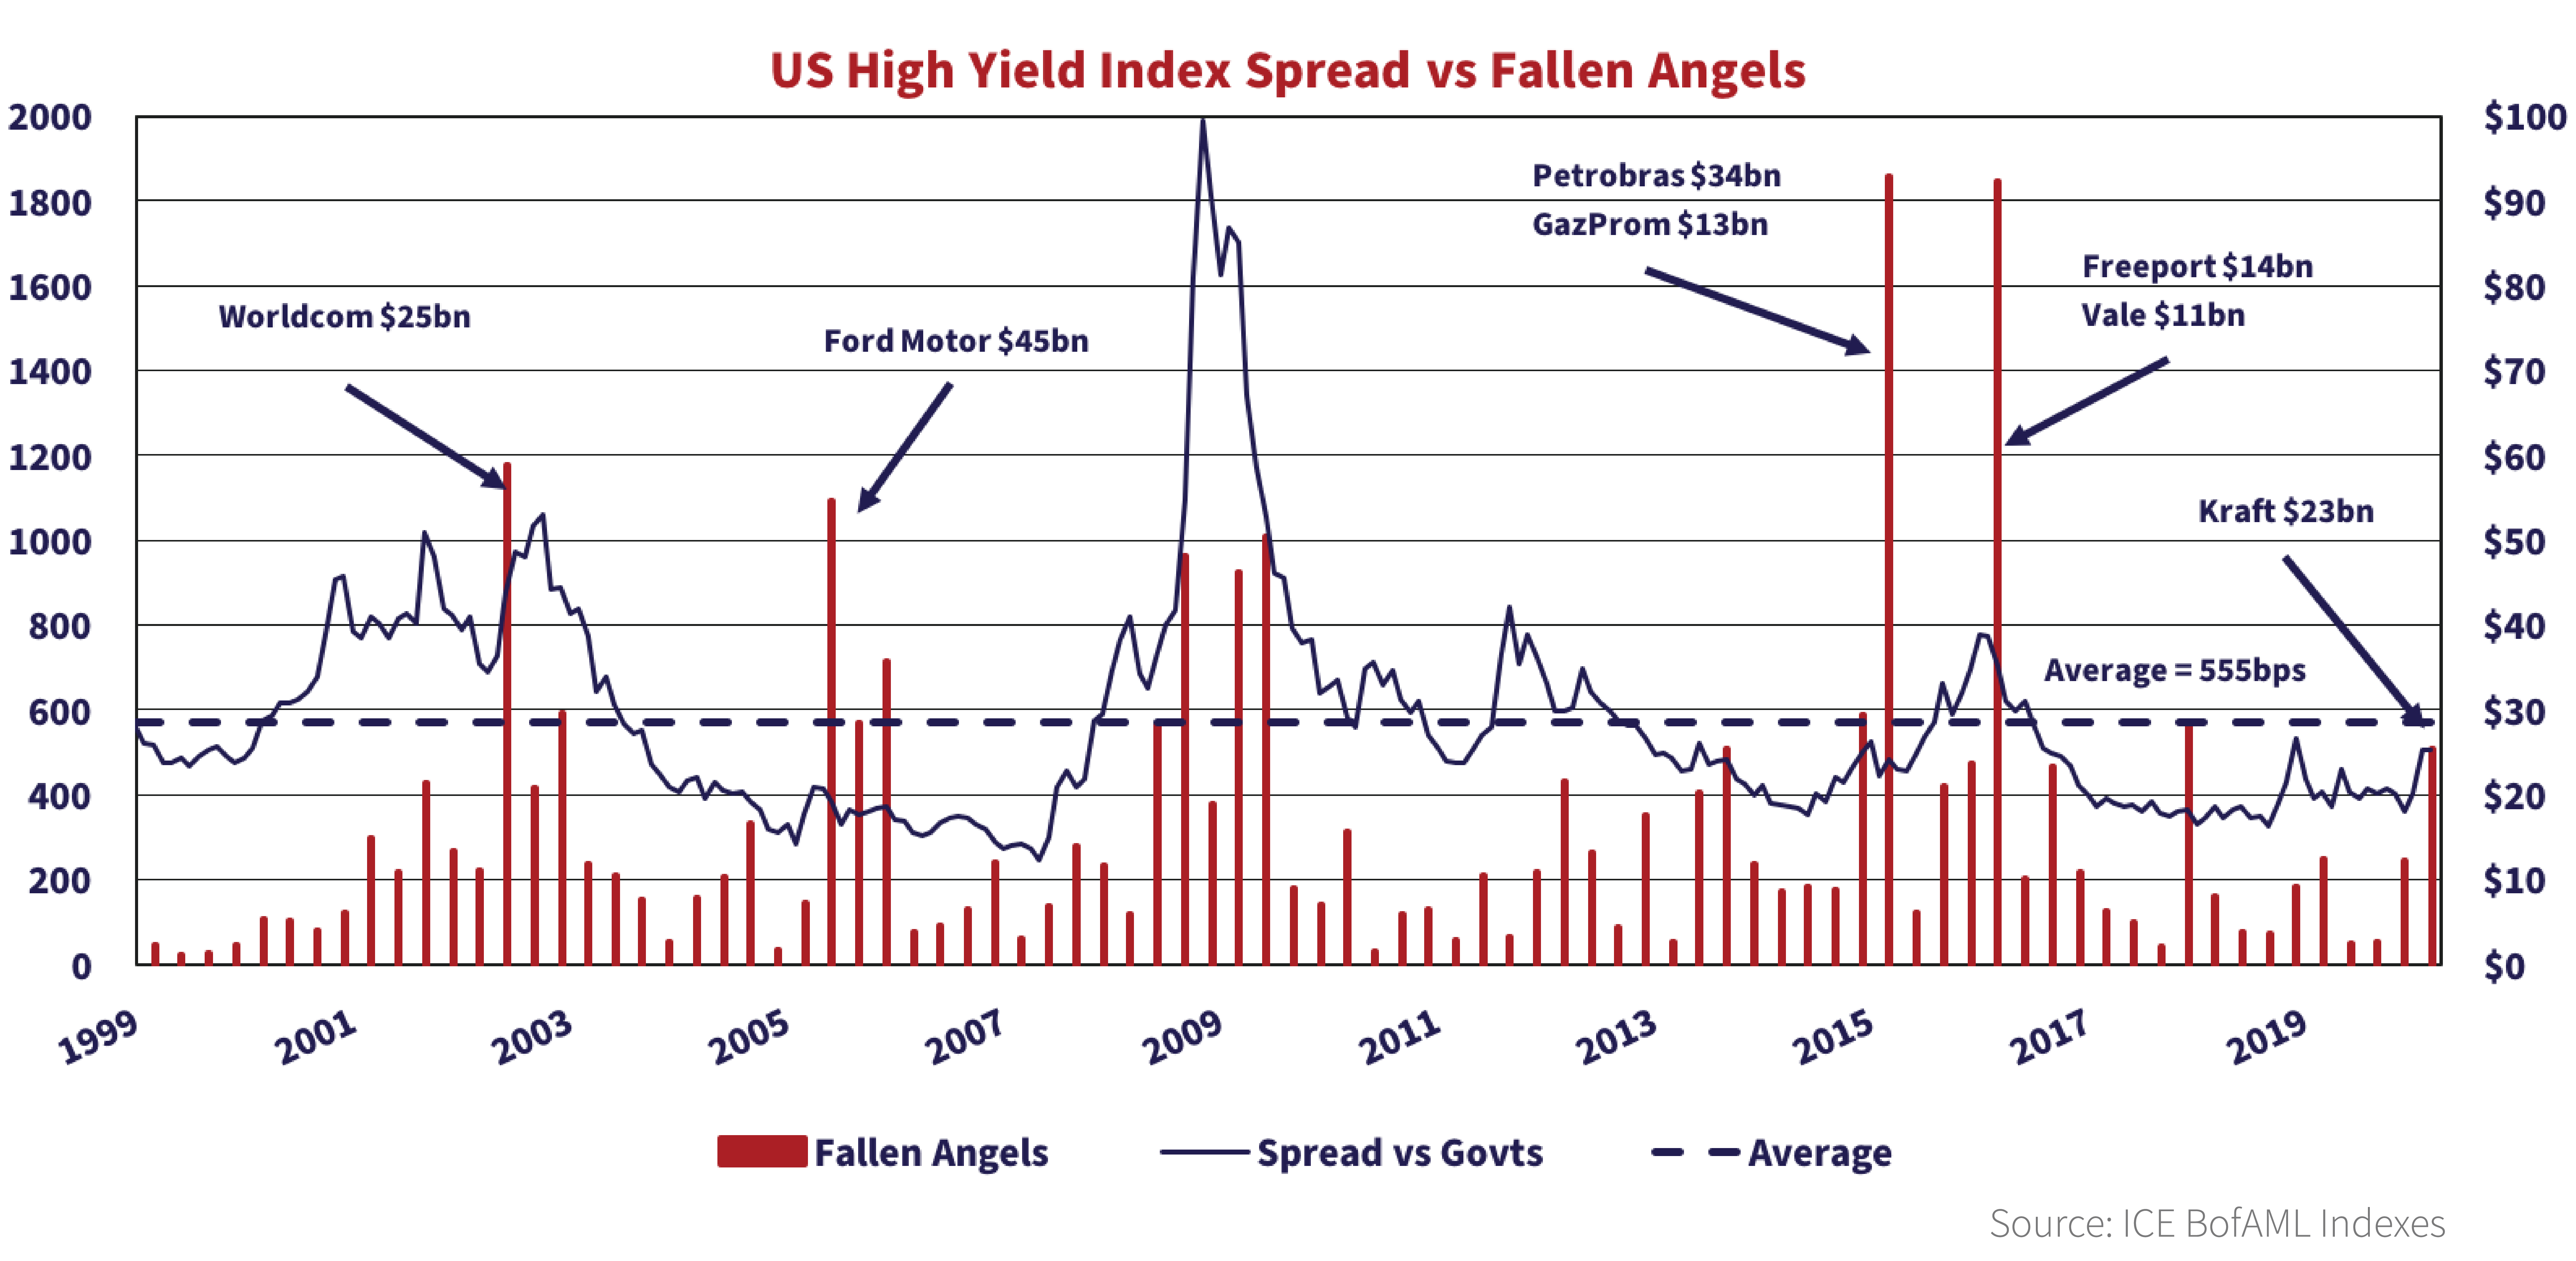 Graph shows the US High yield index spread vs fallen angels over the course of 1999 to 2020.